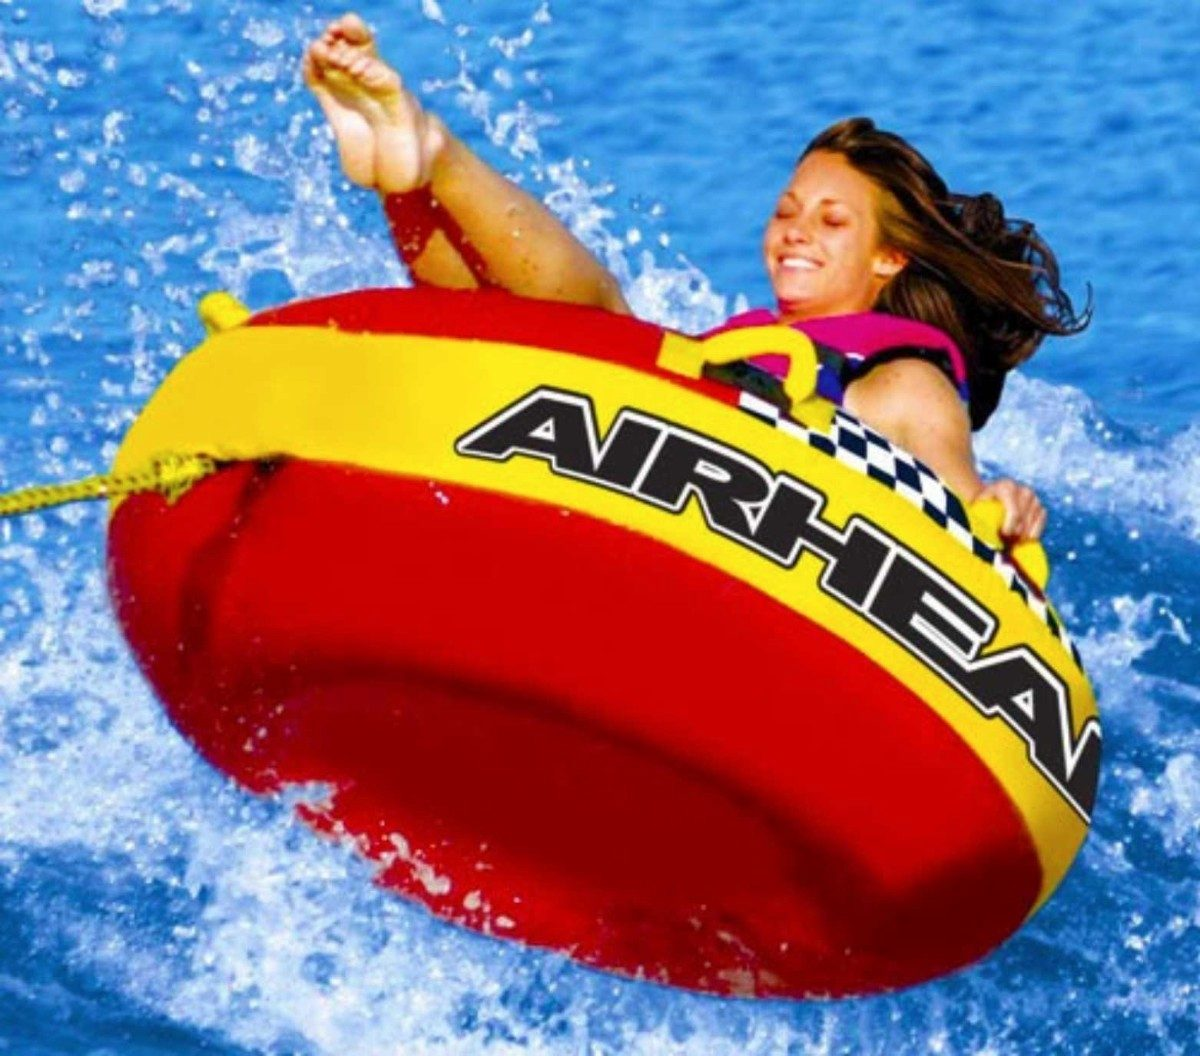 Airhead Blast Water Towables Boat Sports Canada Tow Harness